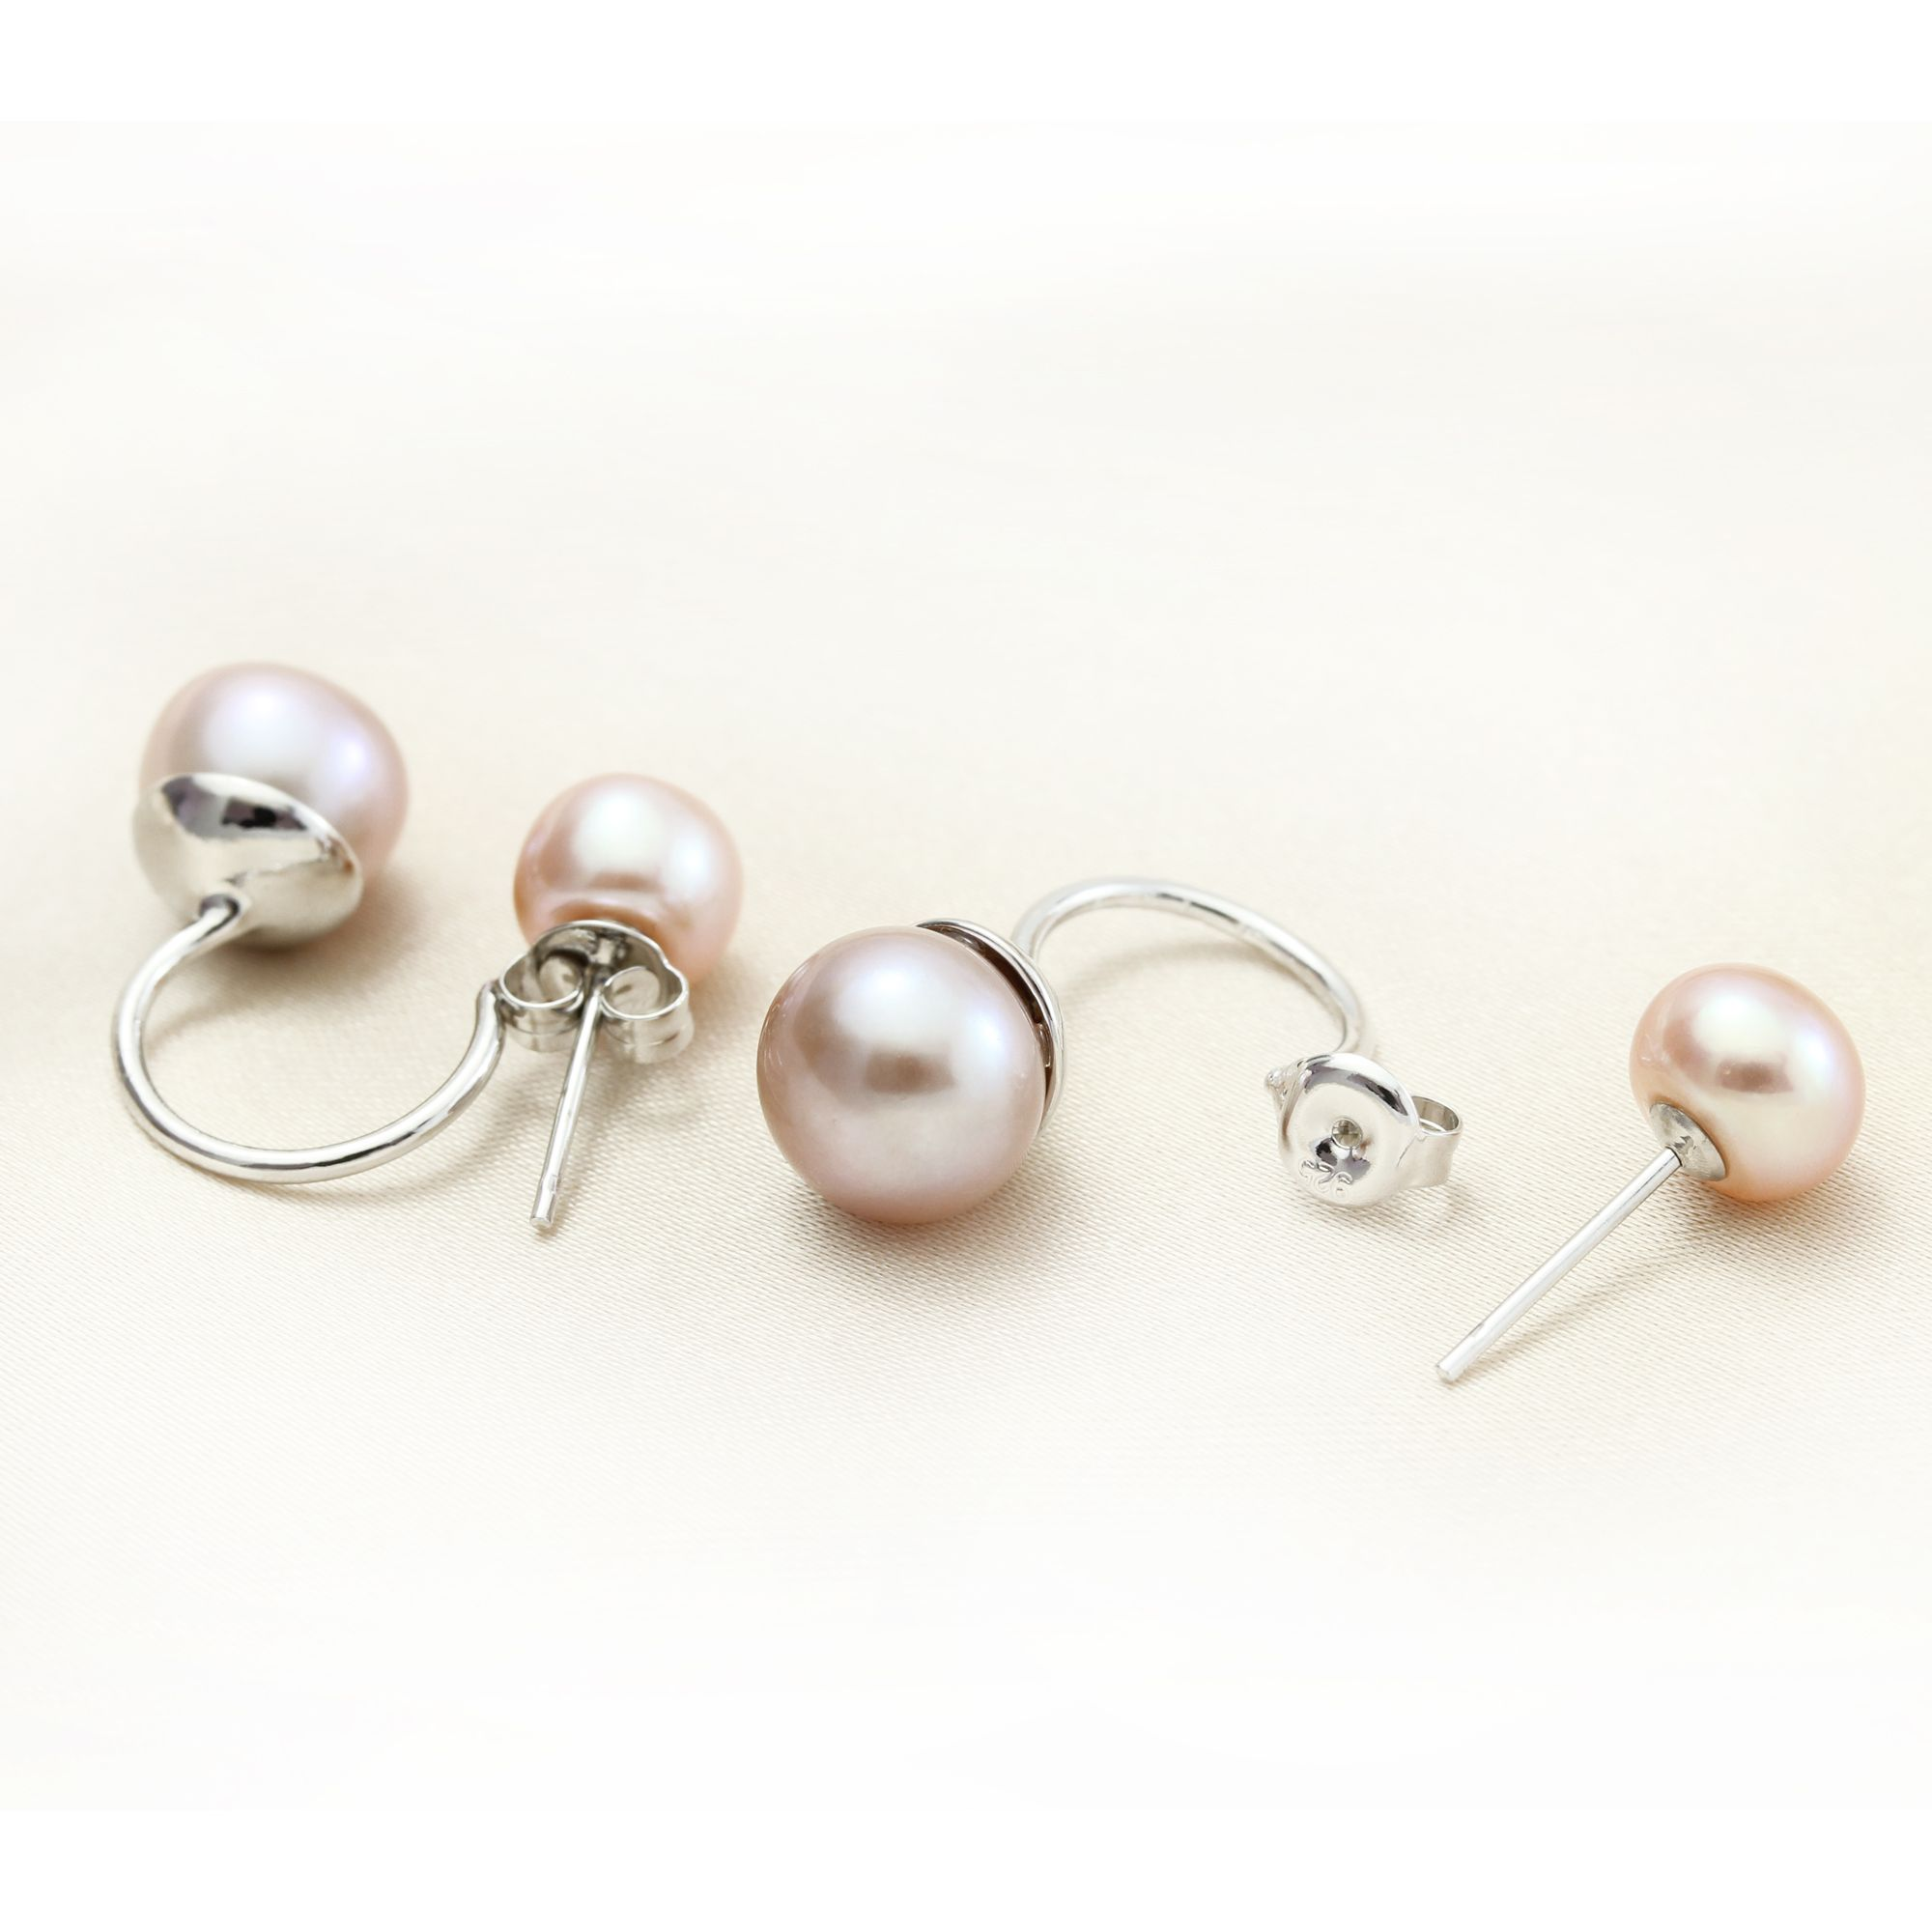 minimalist they bijoux real are and around sway pearl product middle these pearls tiff bead so the articulated crea graphic that earrings